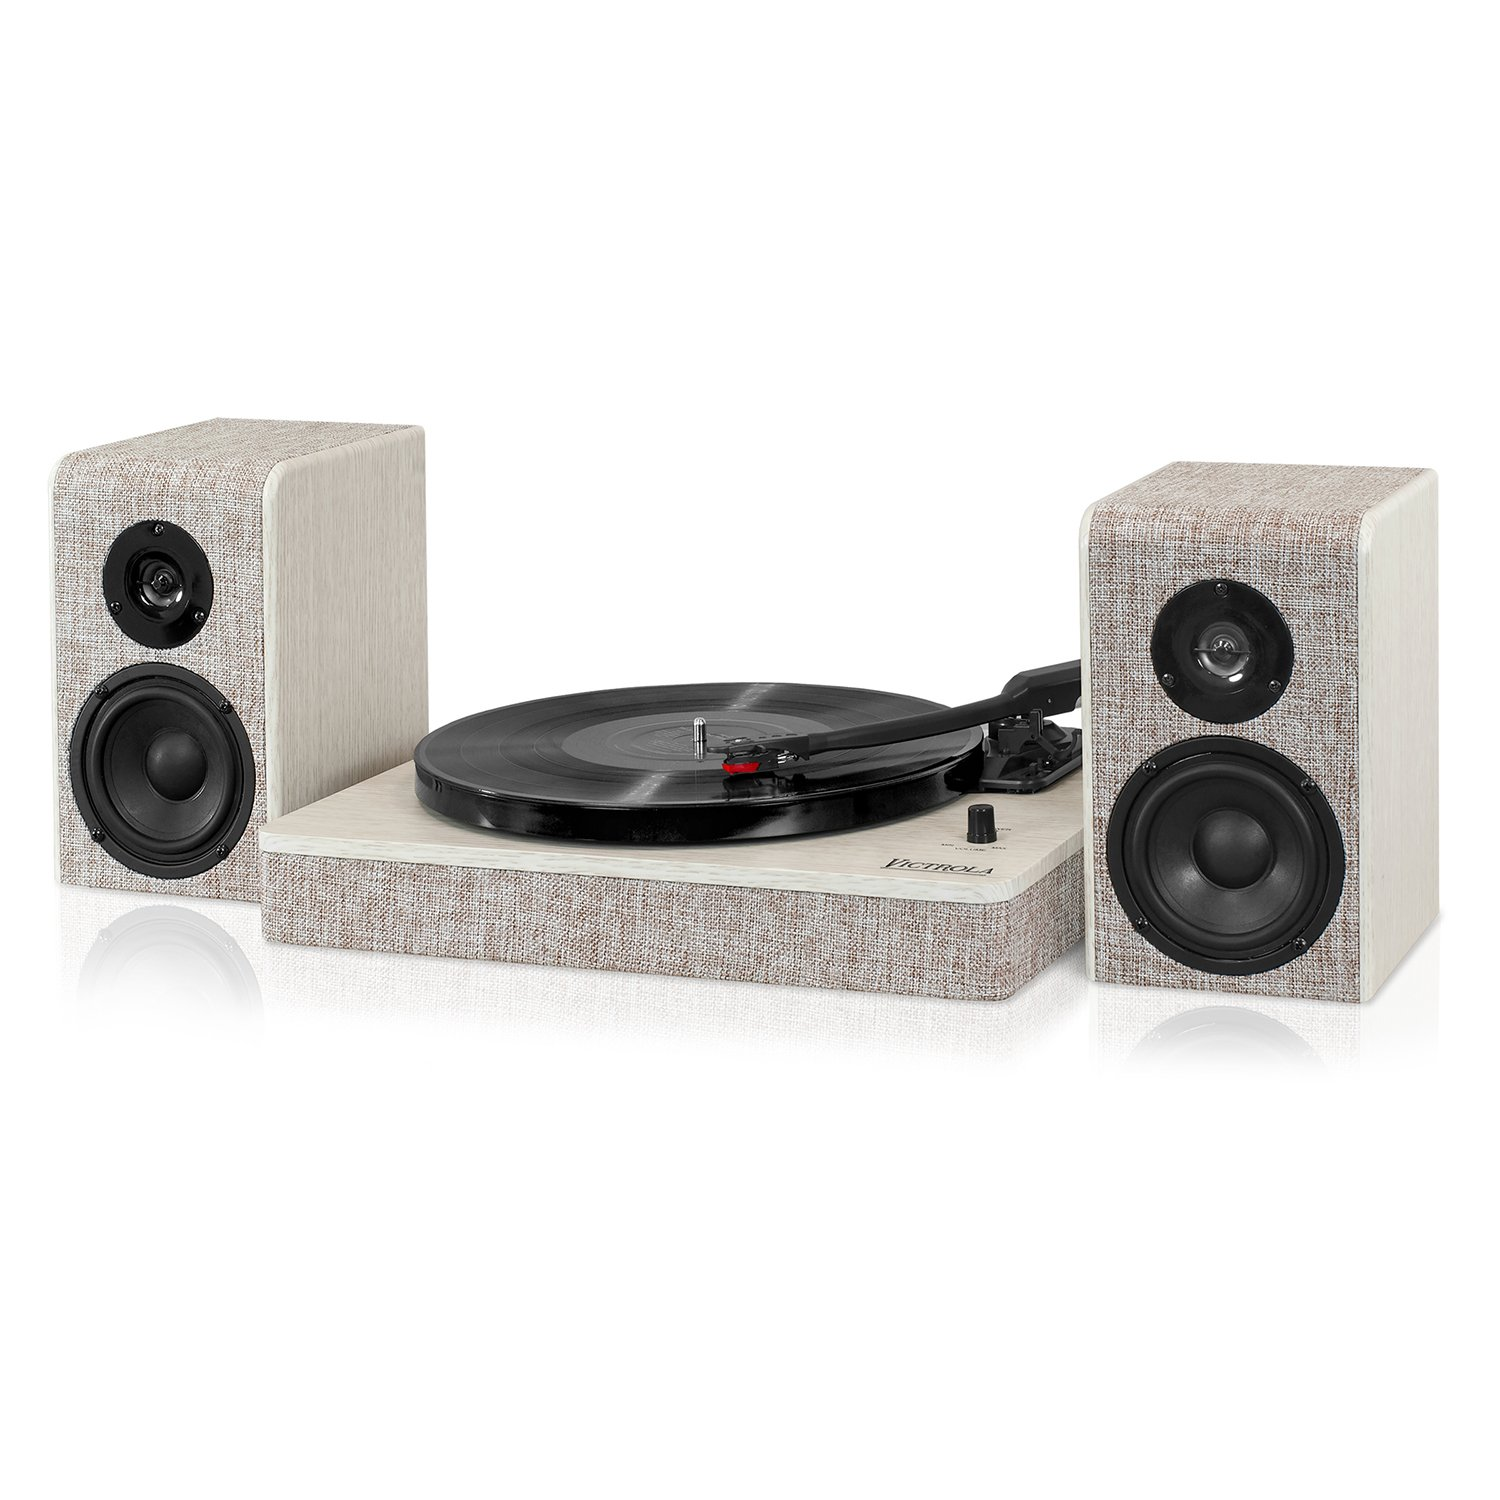 Victrola Modern 3-Speed Bluetooth Turntable with 50 Watt Speakers, White Wood and Linen Fabric Finish